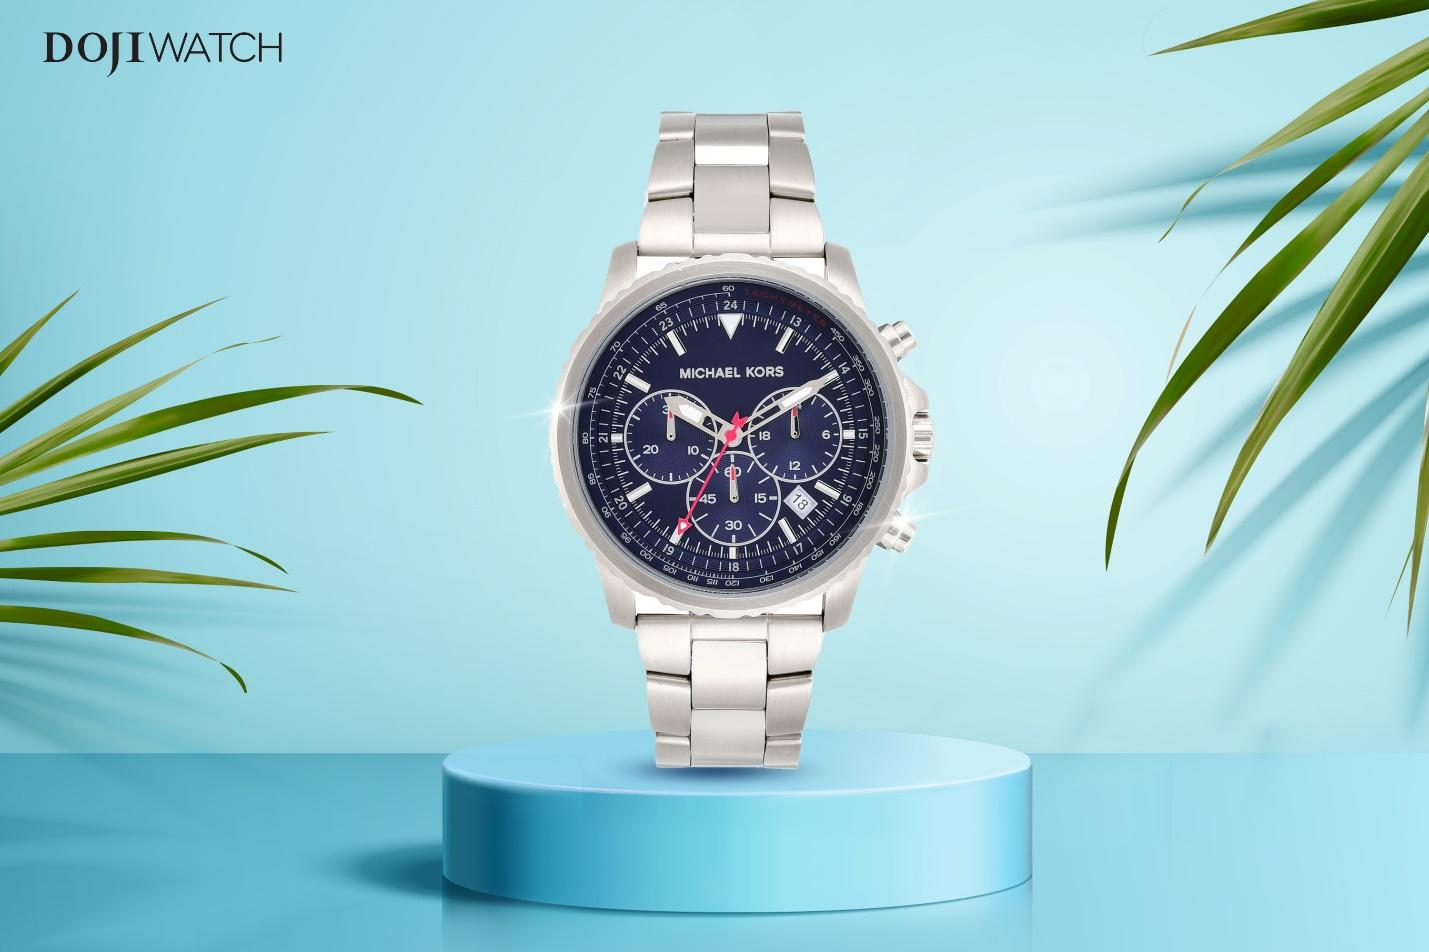 A picture containing watch, palmDescription automatically generated